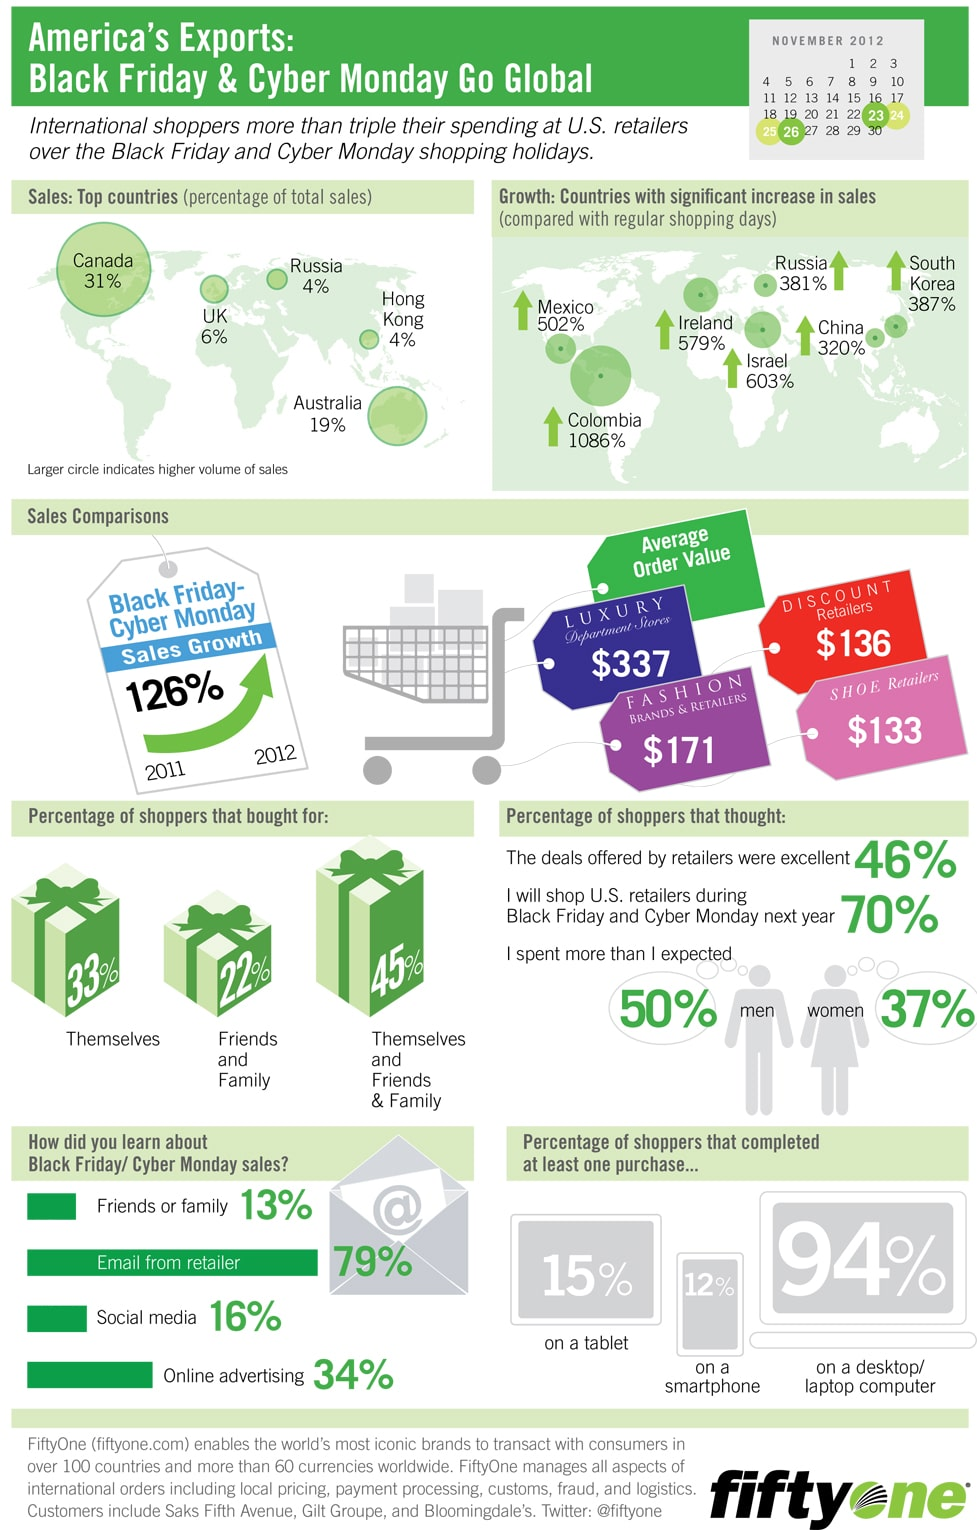 FiftyOne_BlackFriday_CyberMonday_Infographic-1 Die Relevanz von Internationalisierung im E-Commerce anhand Zahlen von Black Friday und Cyber Monday in 2012